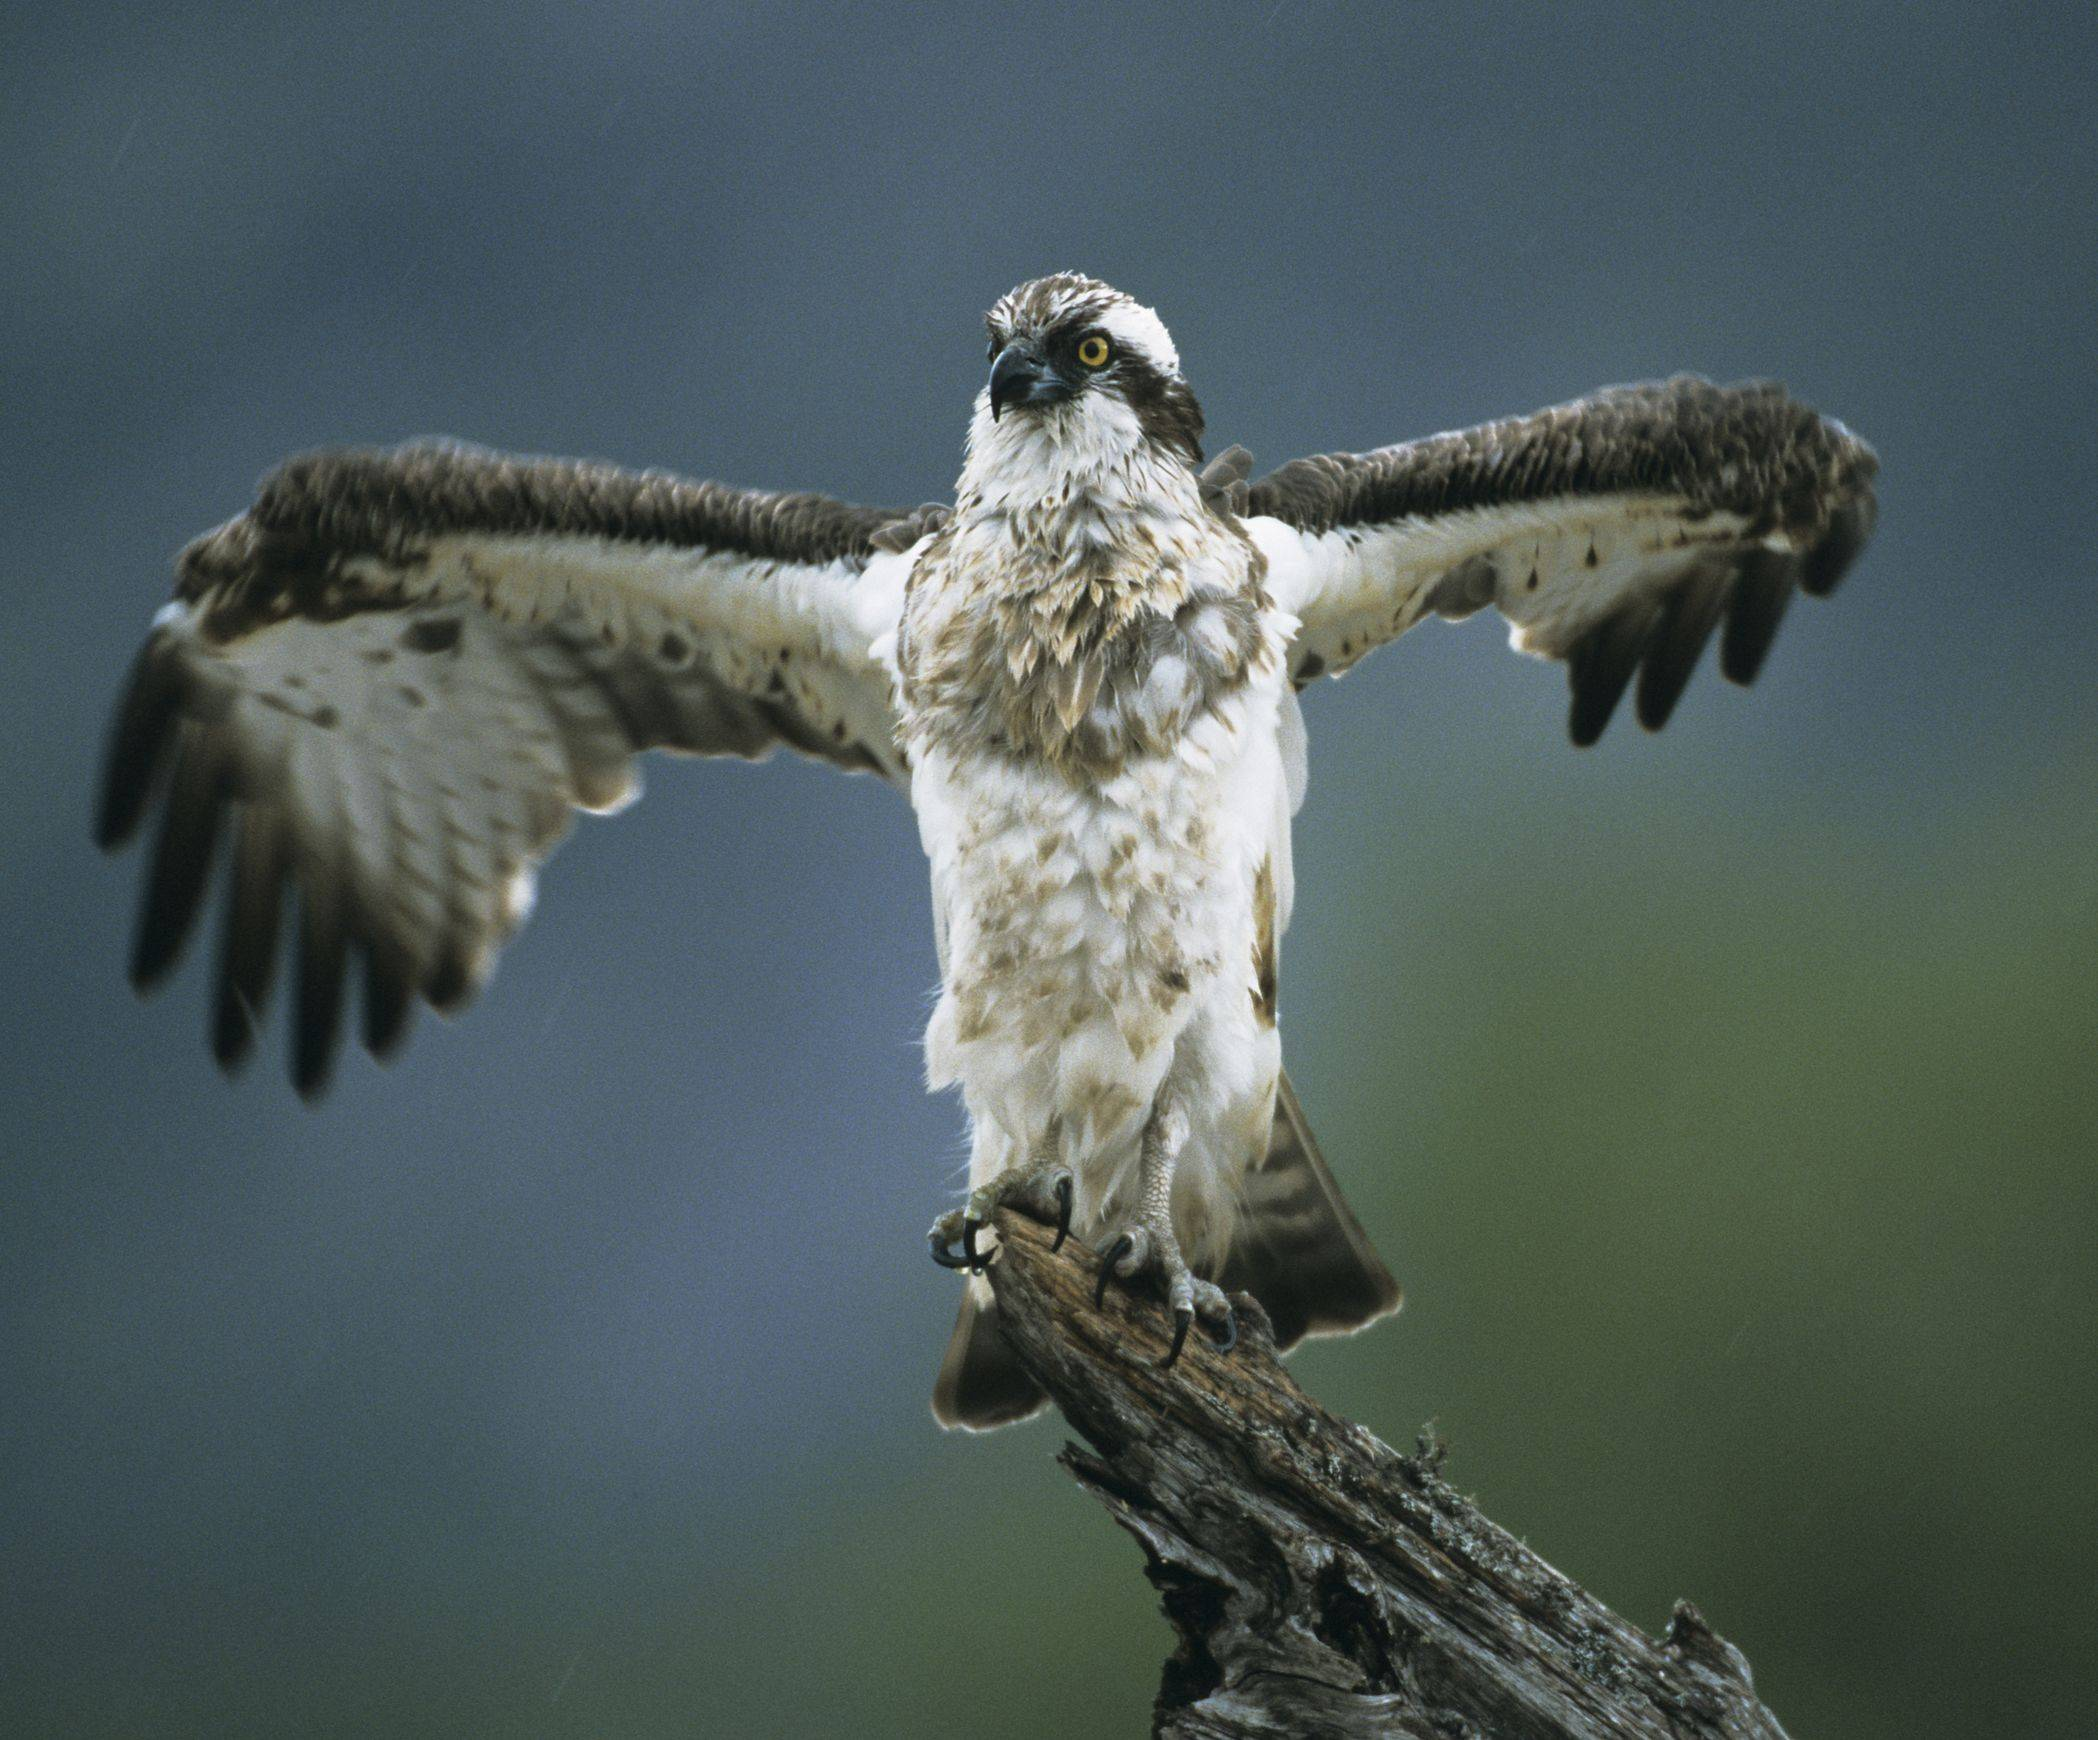 An Osprey (pandion haliaetus) is one of the 112 endangered or threatened species in Cook County. Lake and Cook counties have more endangered and threatened species than any other county in the state.